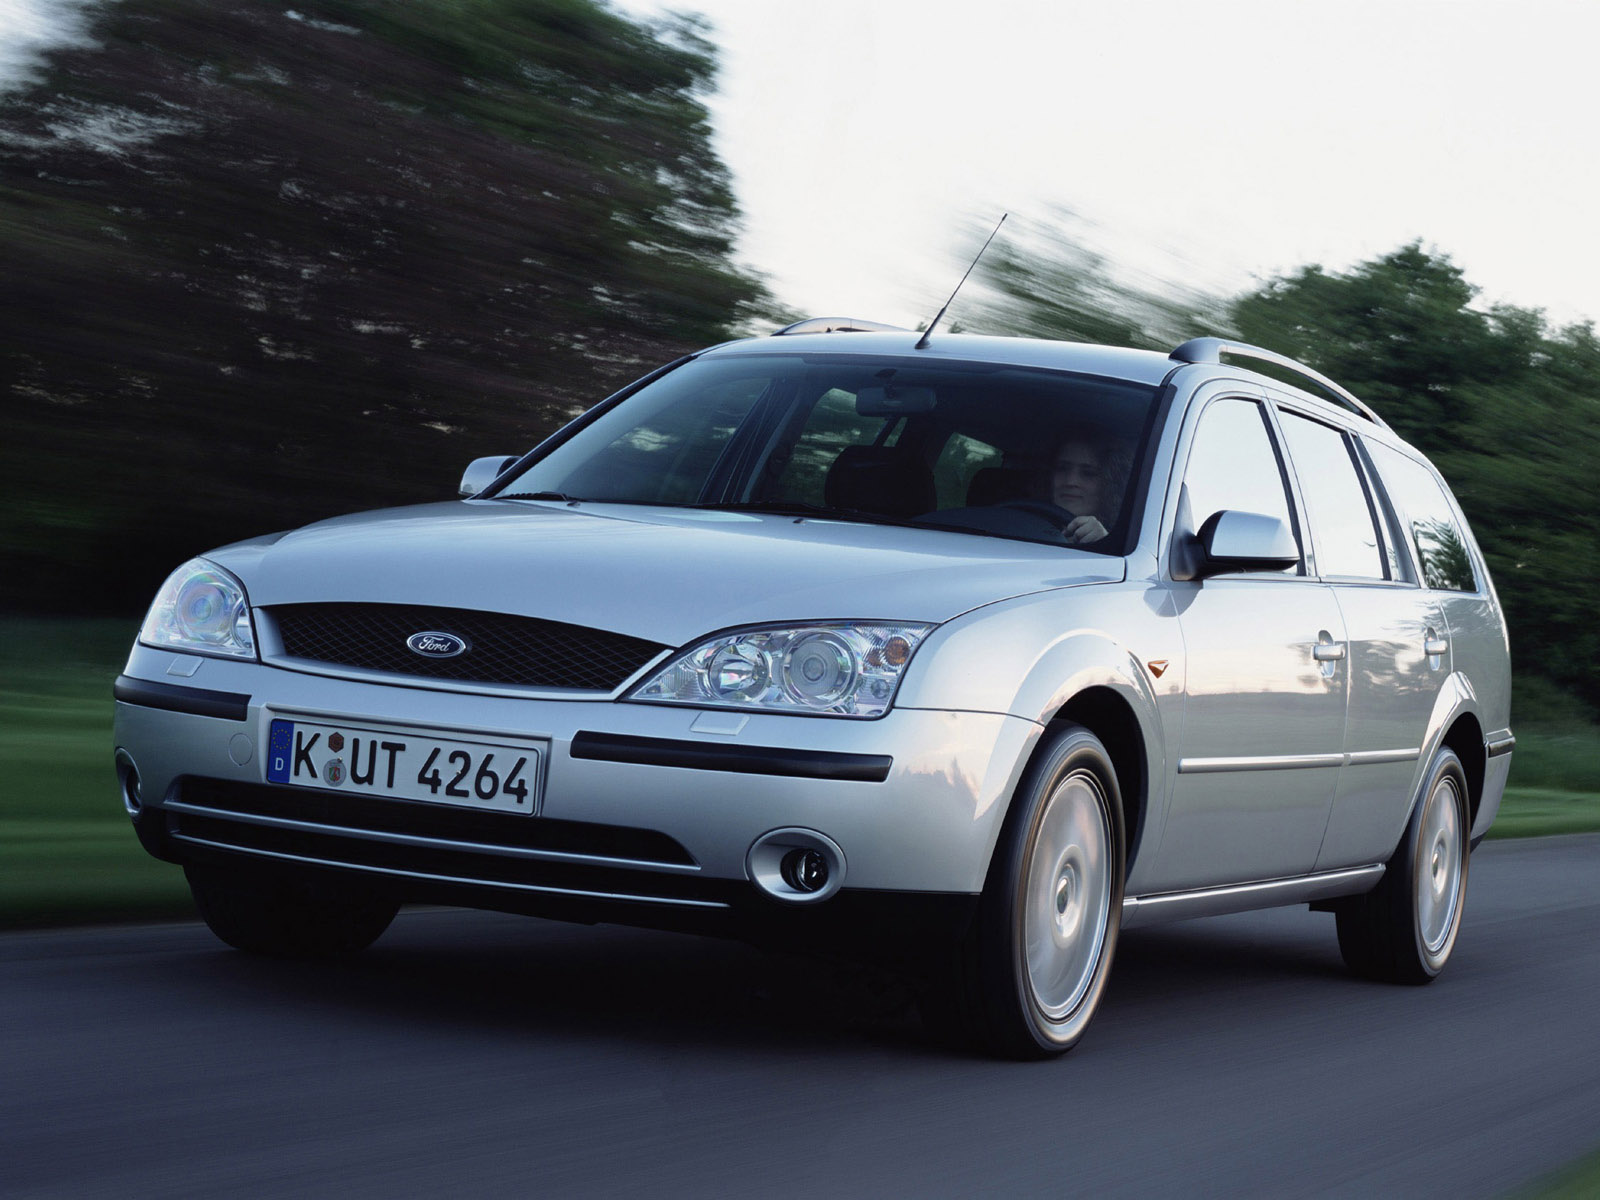 Ford Mondeo Turnier image #15